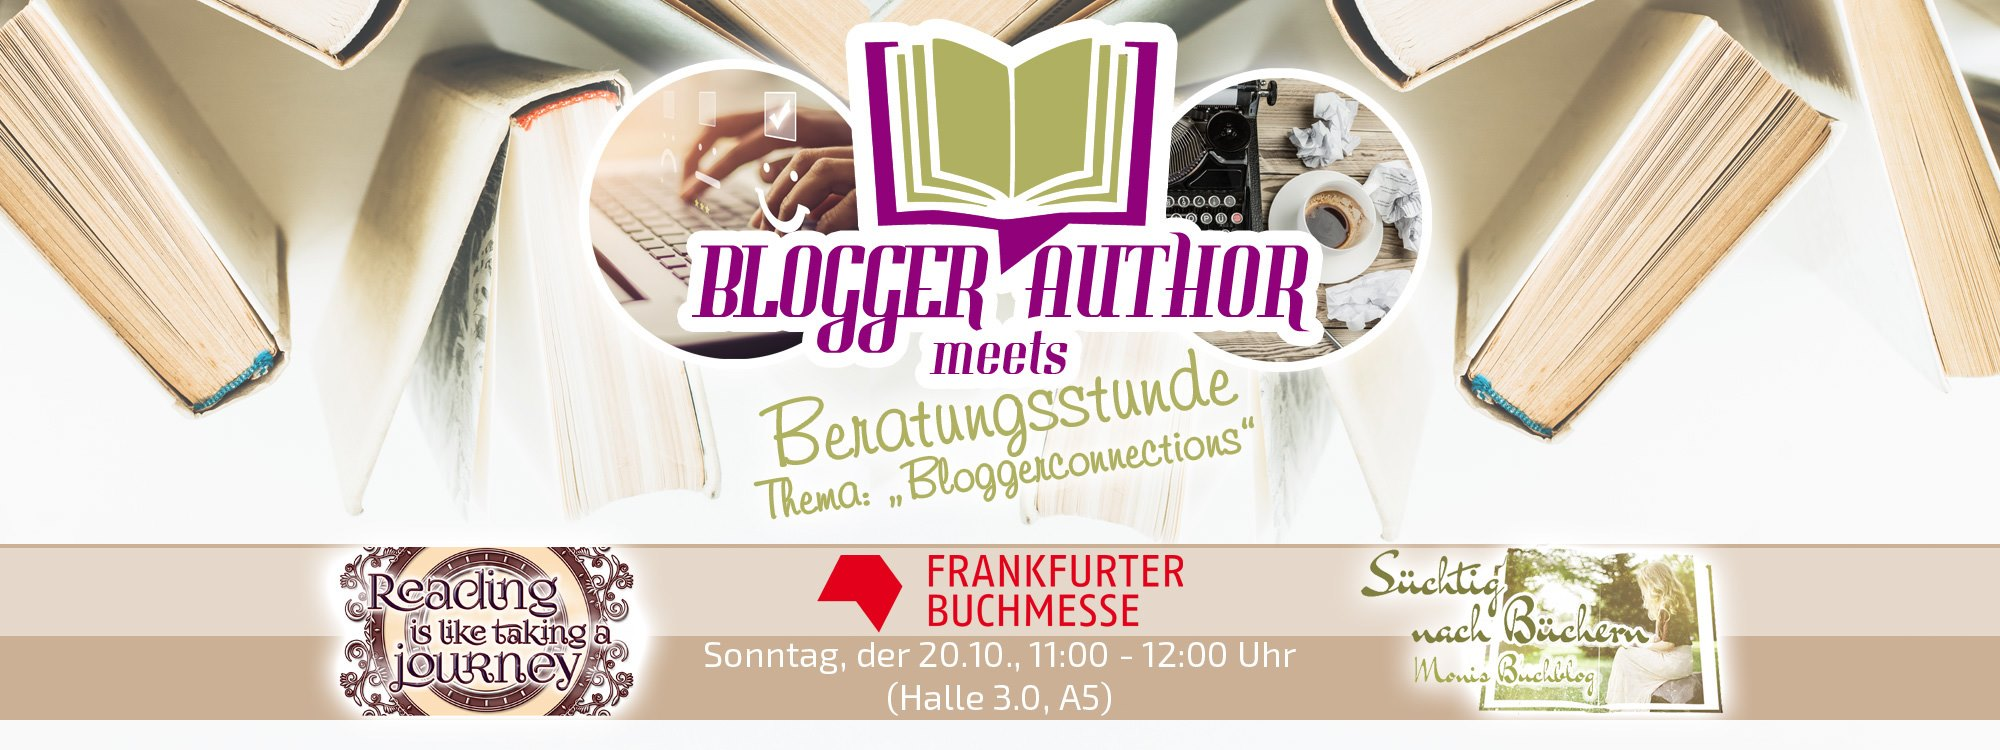 "Blogger meets Author: Beratungsstunde zum Thema ""Bloggerconnections"""